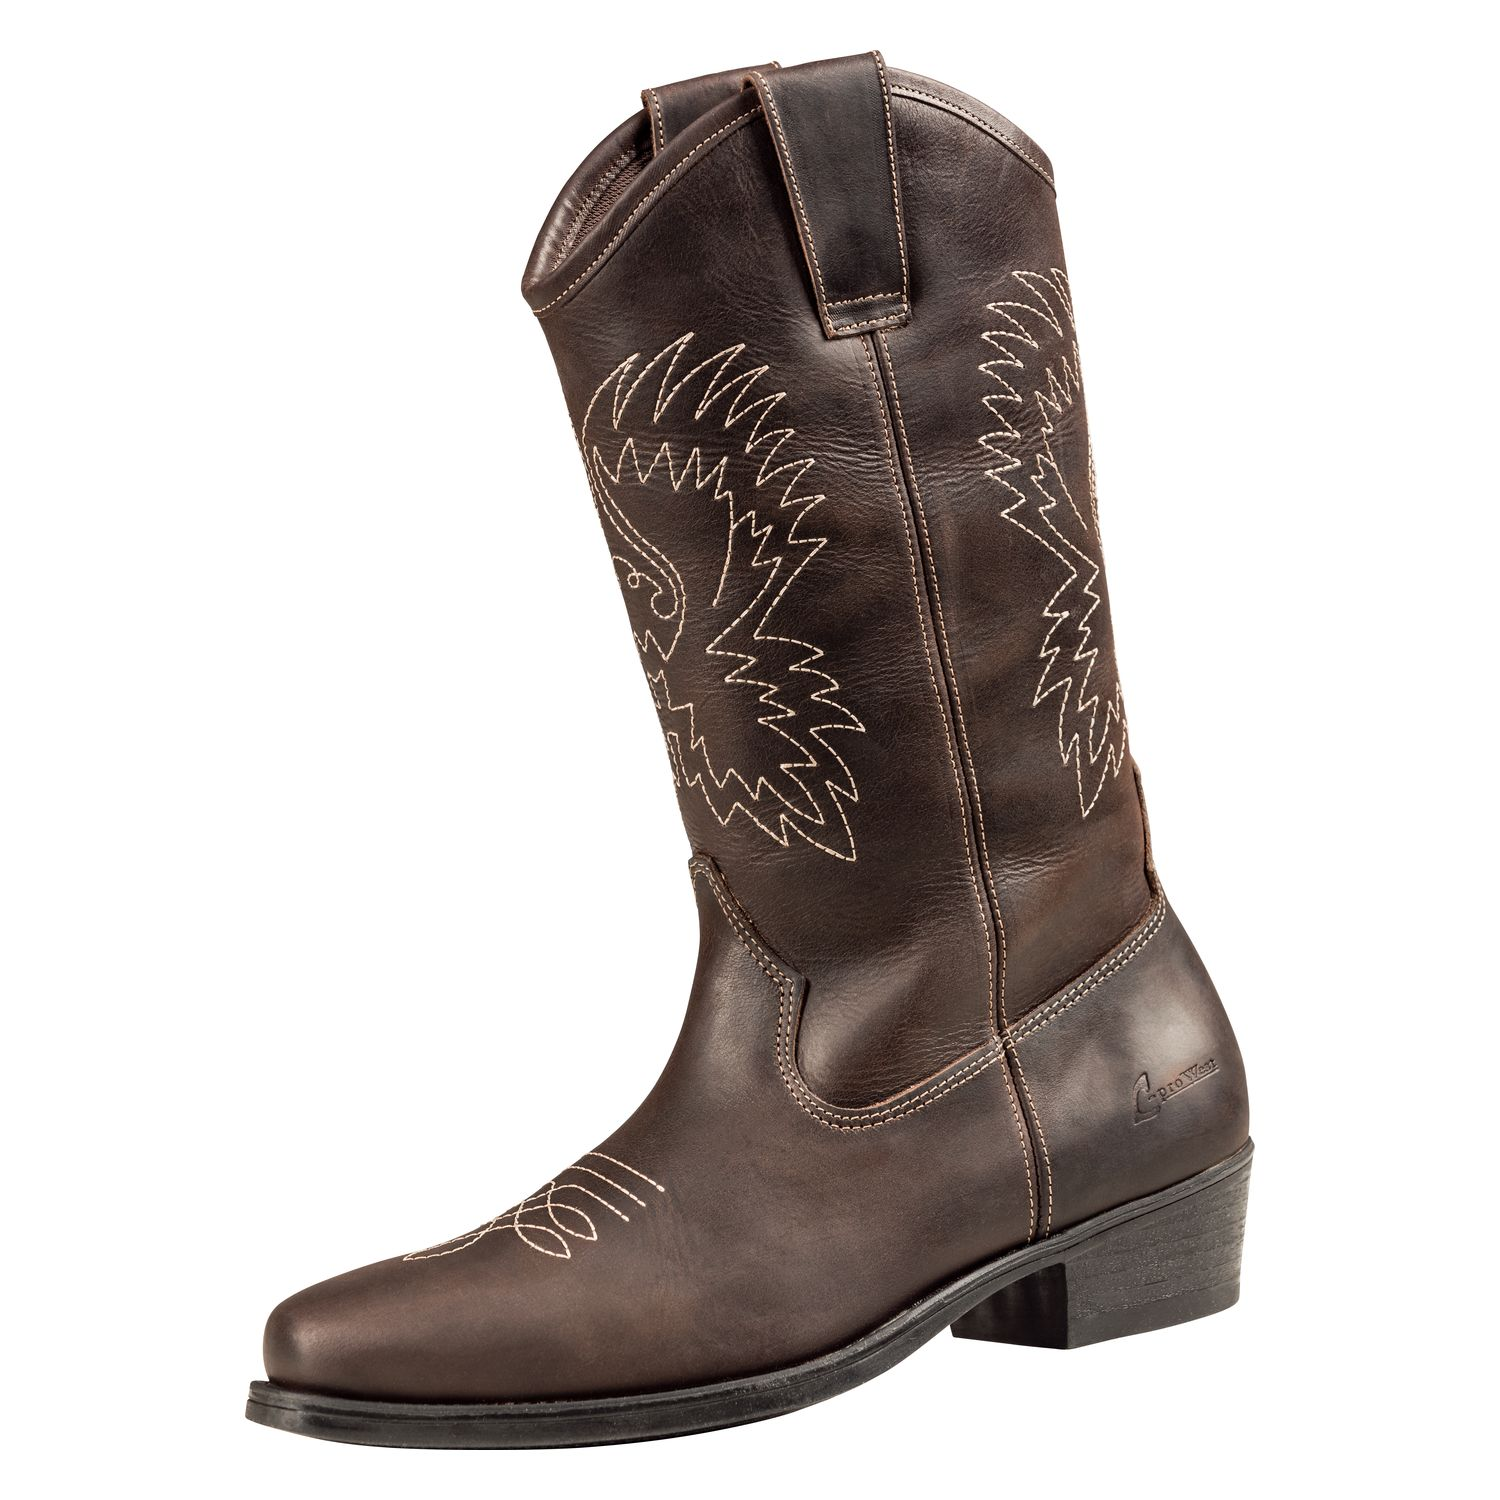 L-pro West Westernstiefel Wyoming